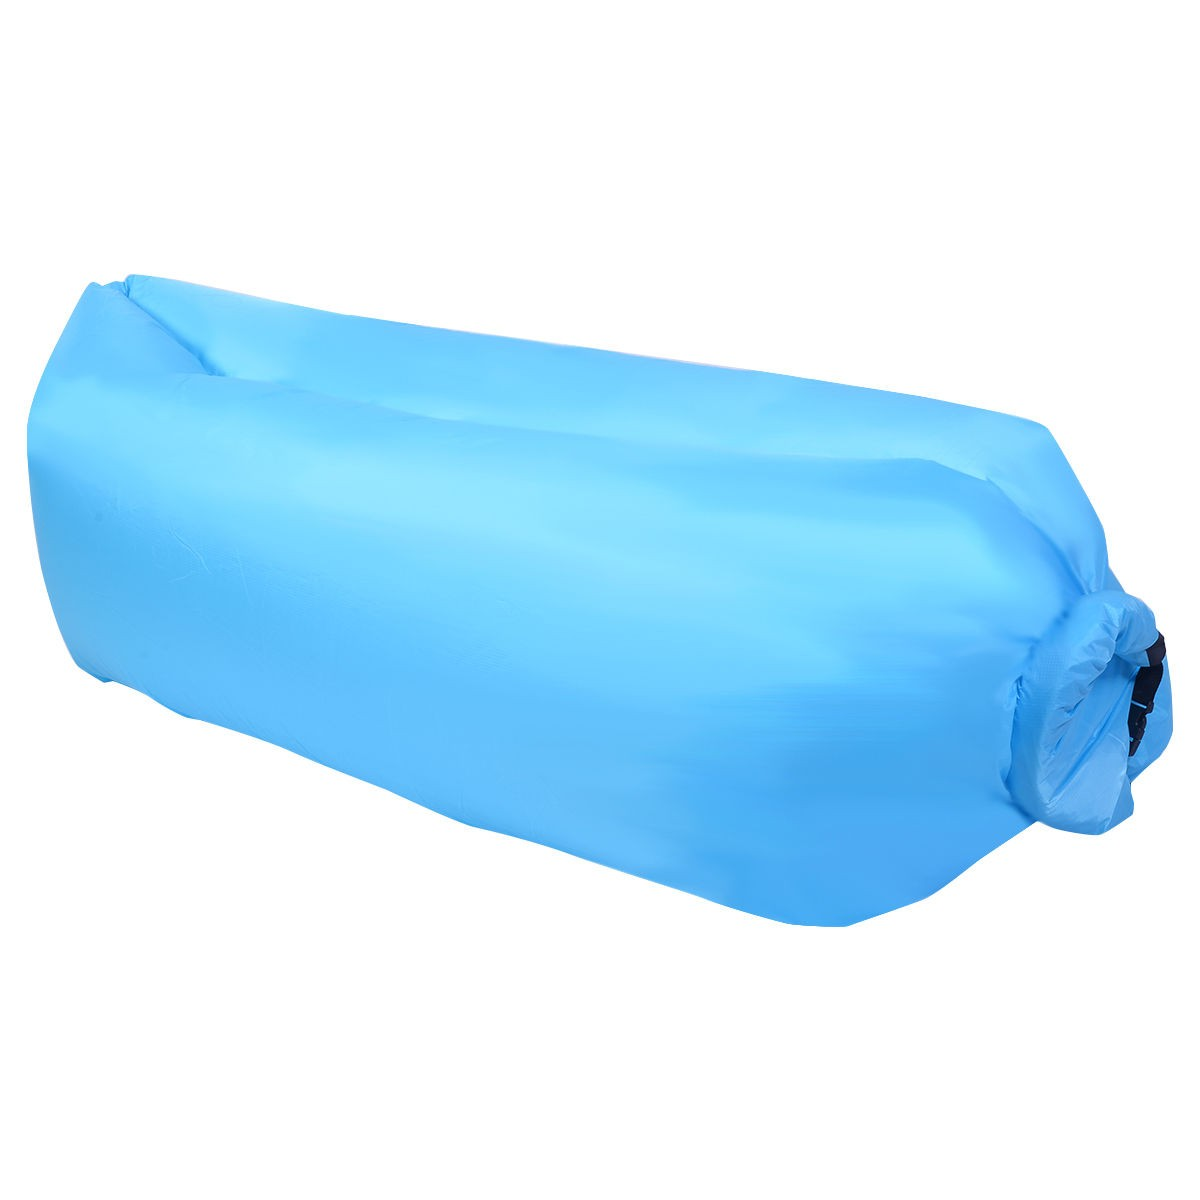 Air Sofa Camping: Outdoor Lazy Inflatable Couch Air Sleeping Sofa Lounger